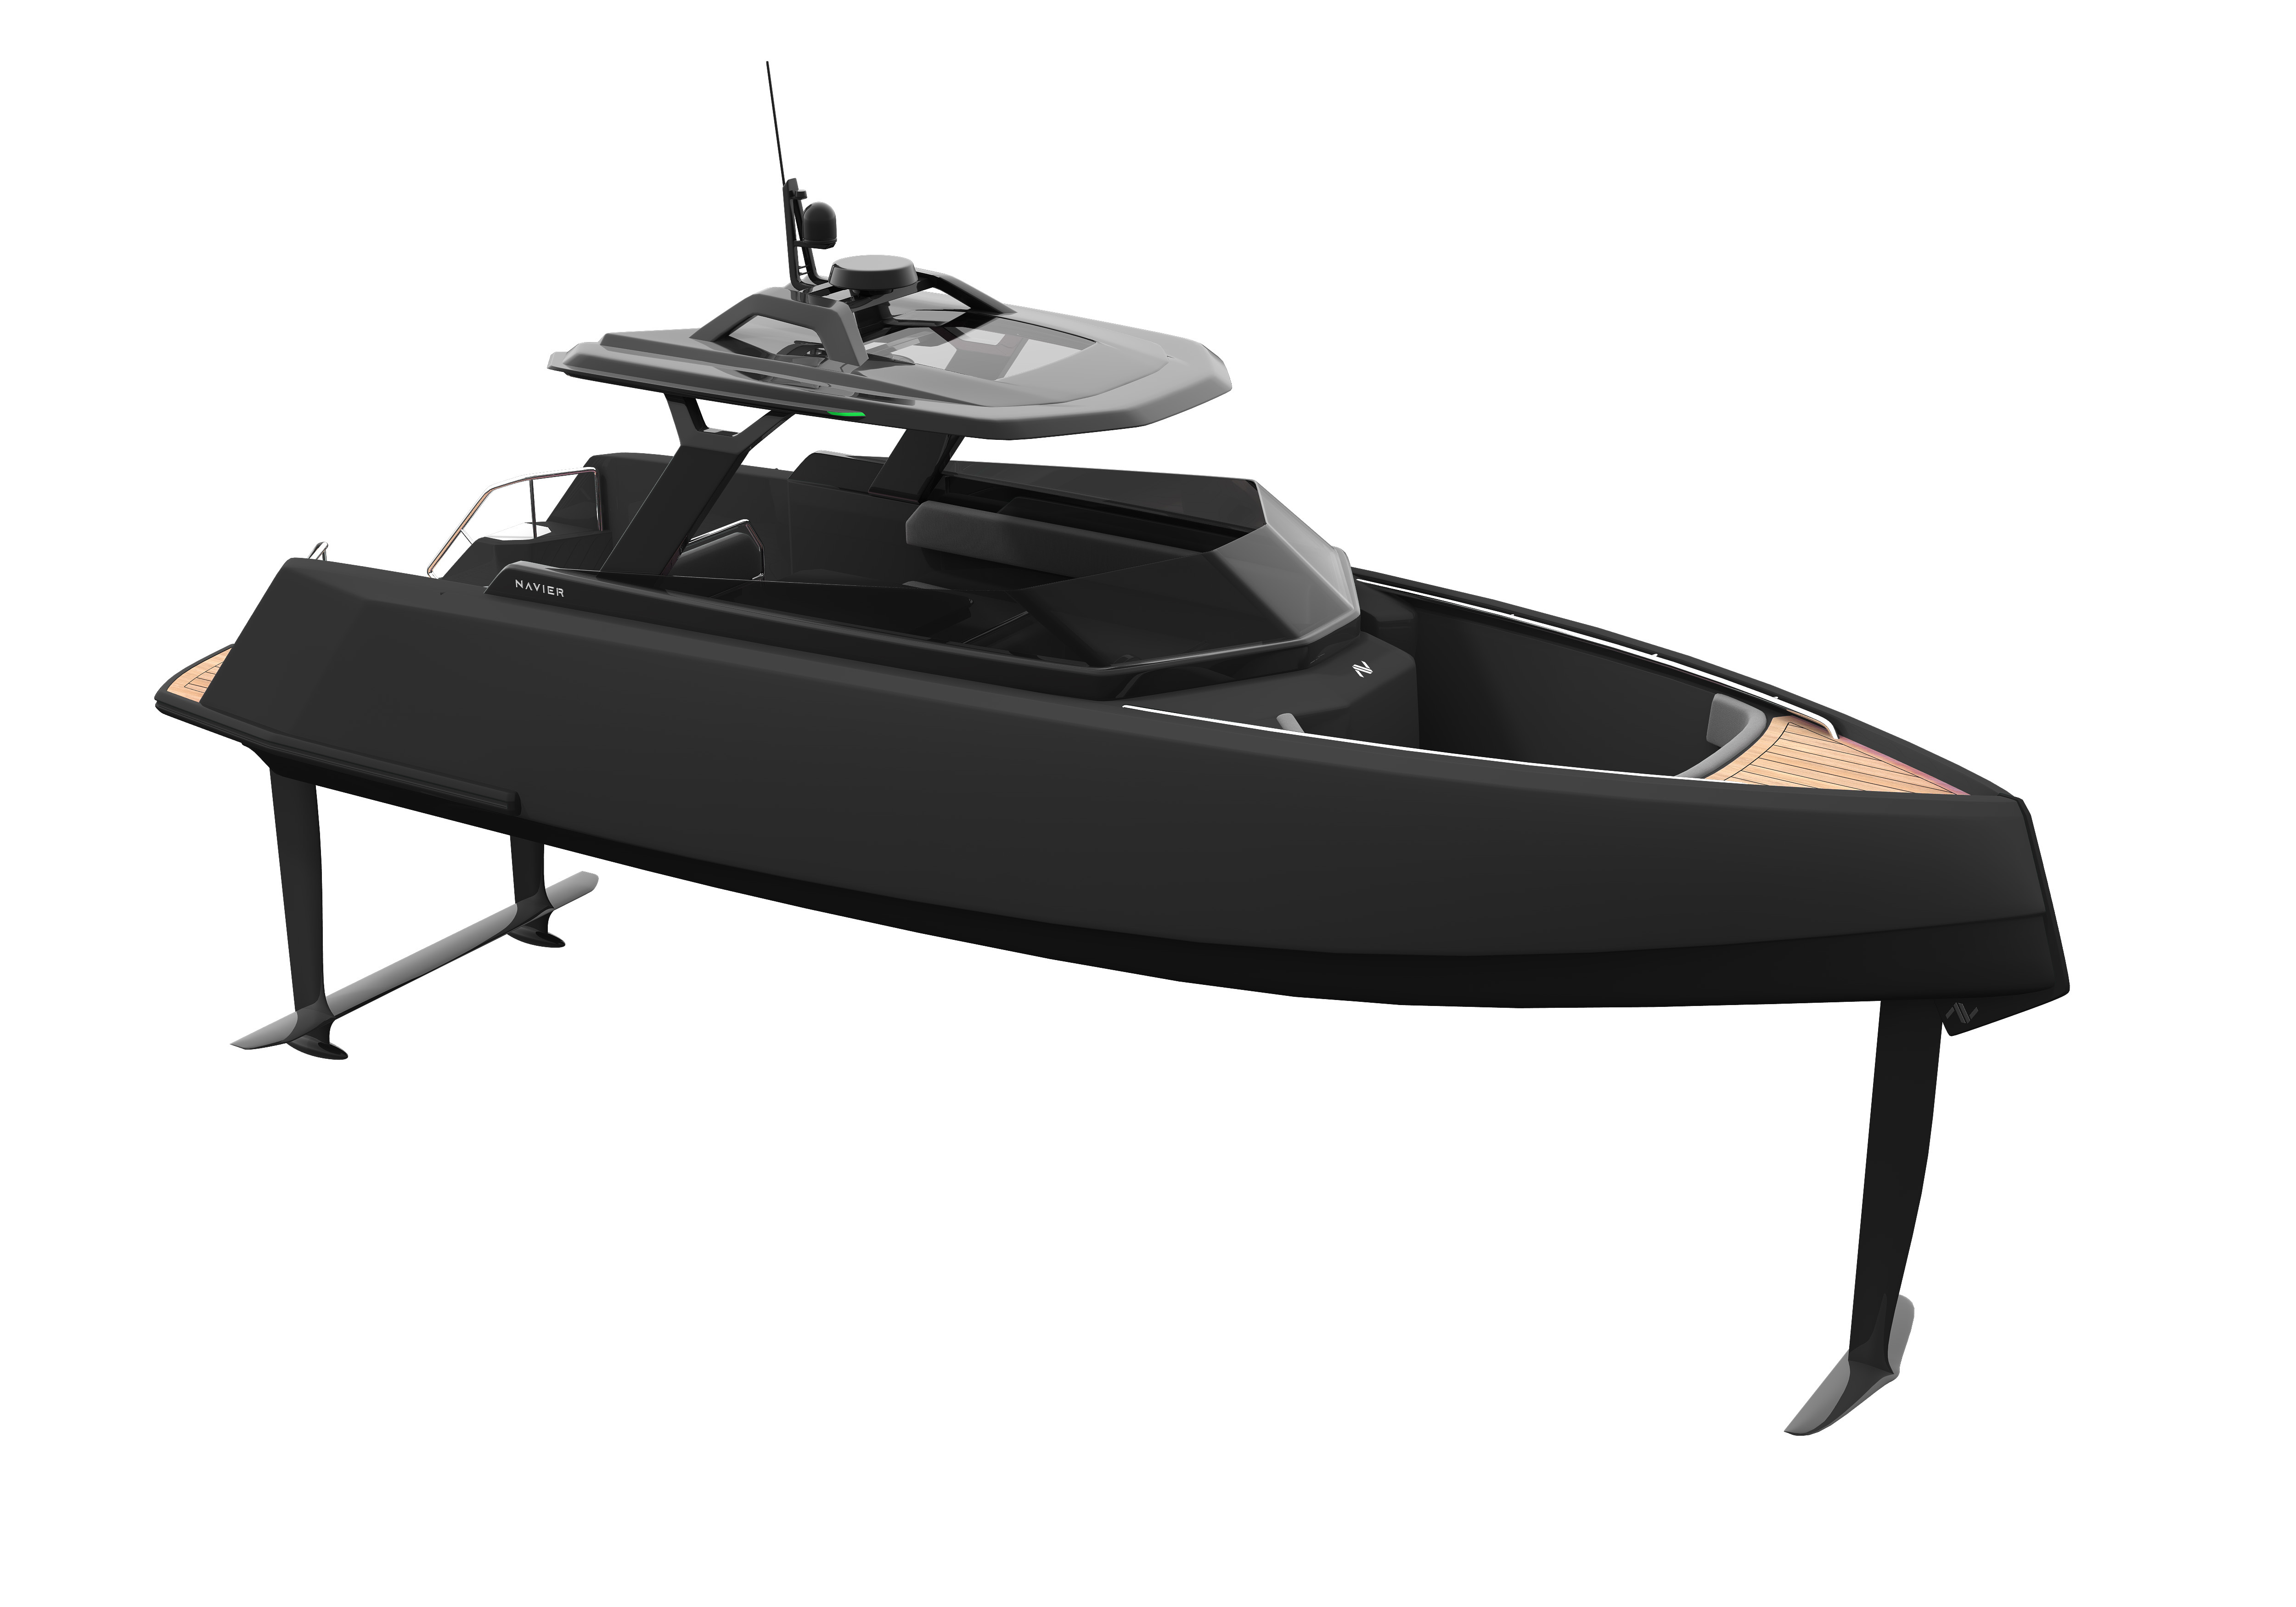 The Navier 27 electric boat